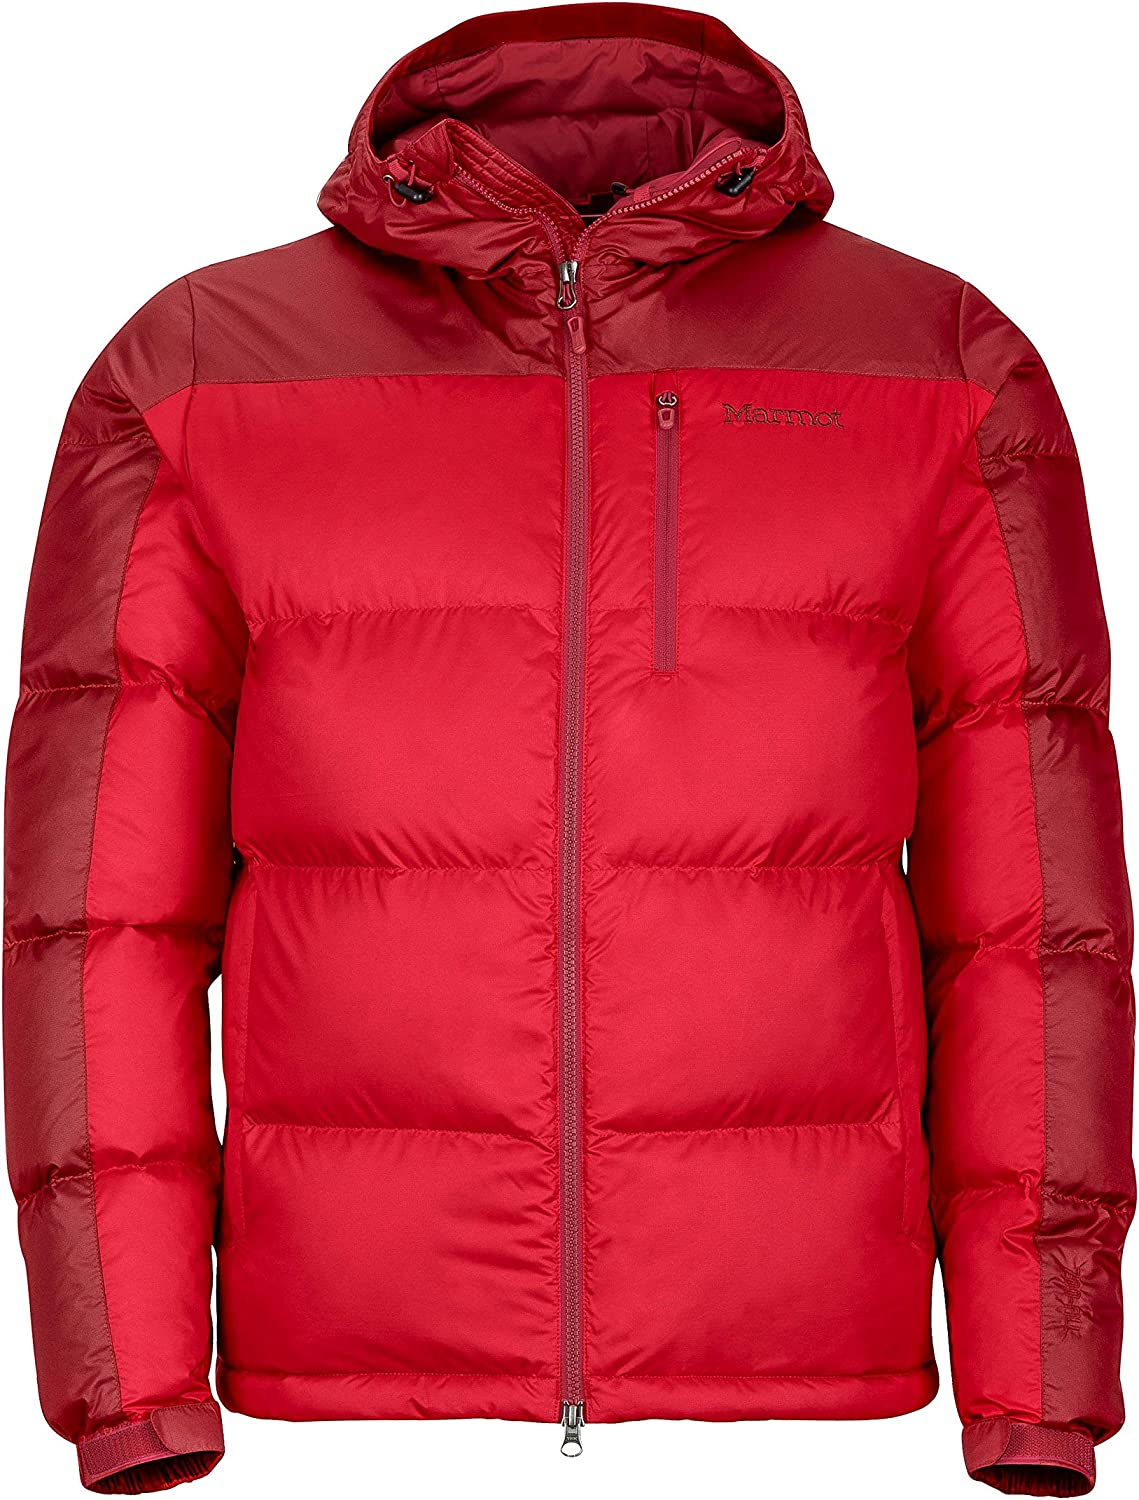 Details about  /New Marmot Titus Gore-Tex Red Hooded Waterproof Rain Jacket Mens XL